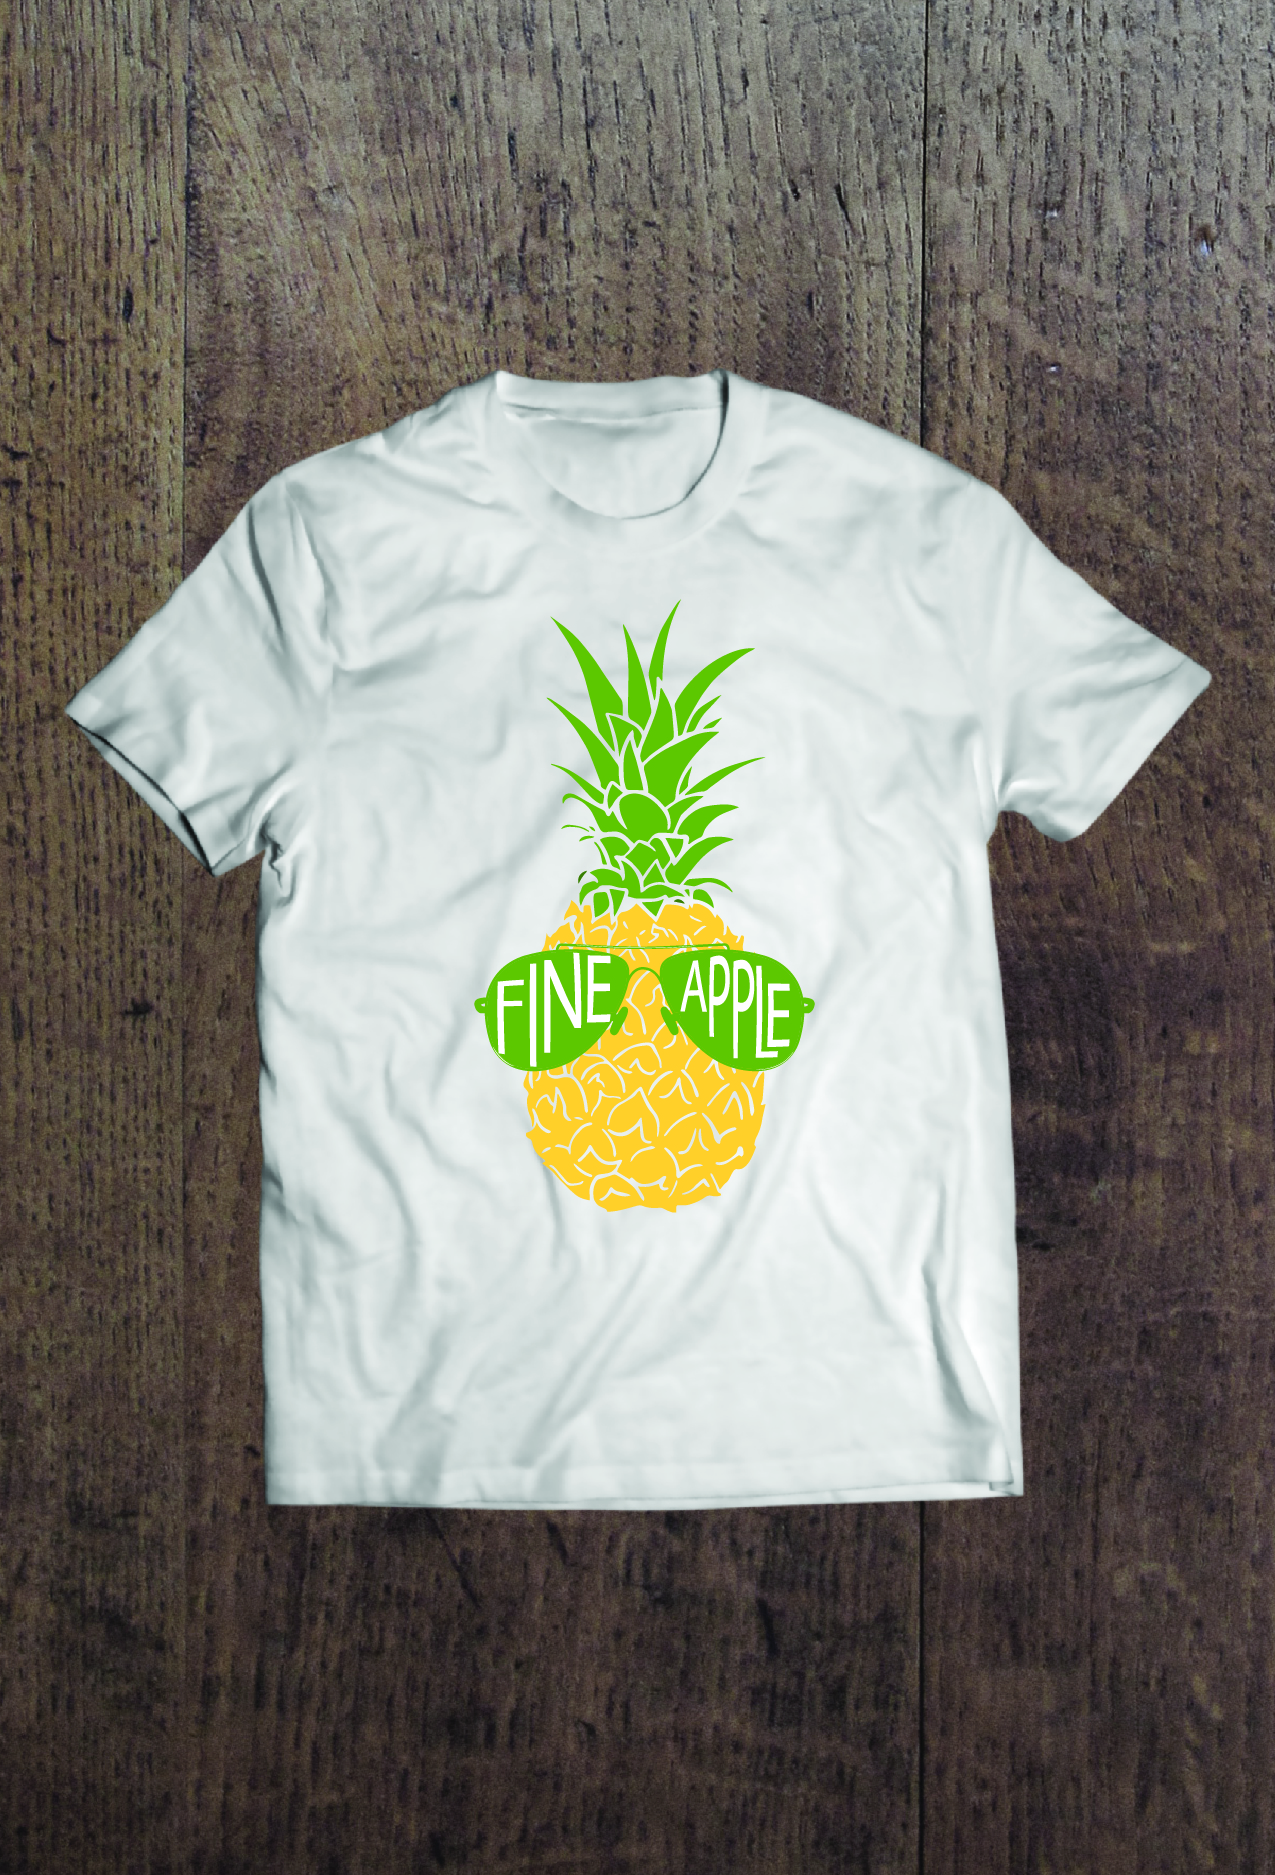 Coming Soon... - Celebrate your self-love. Own your FINEAPPLE-NESS!